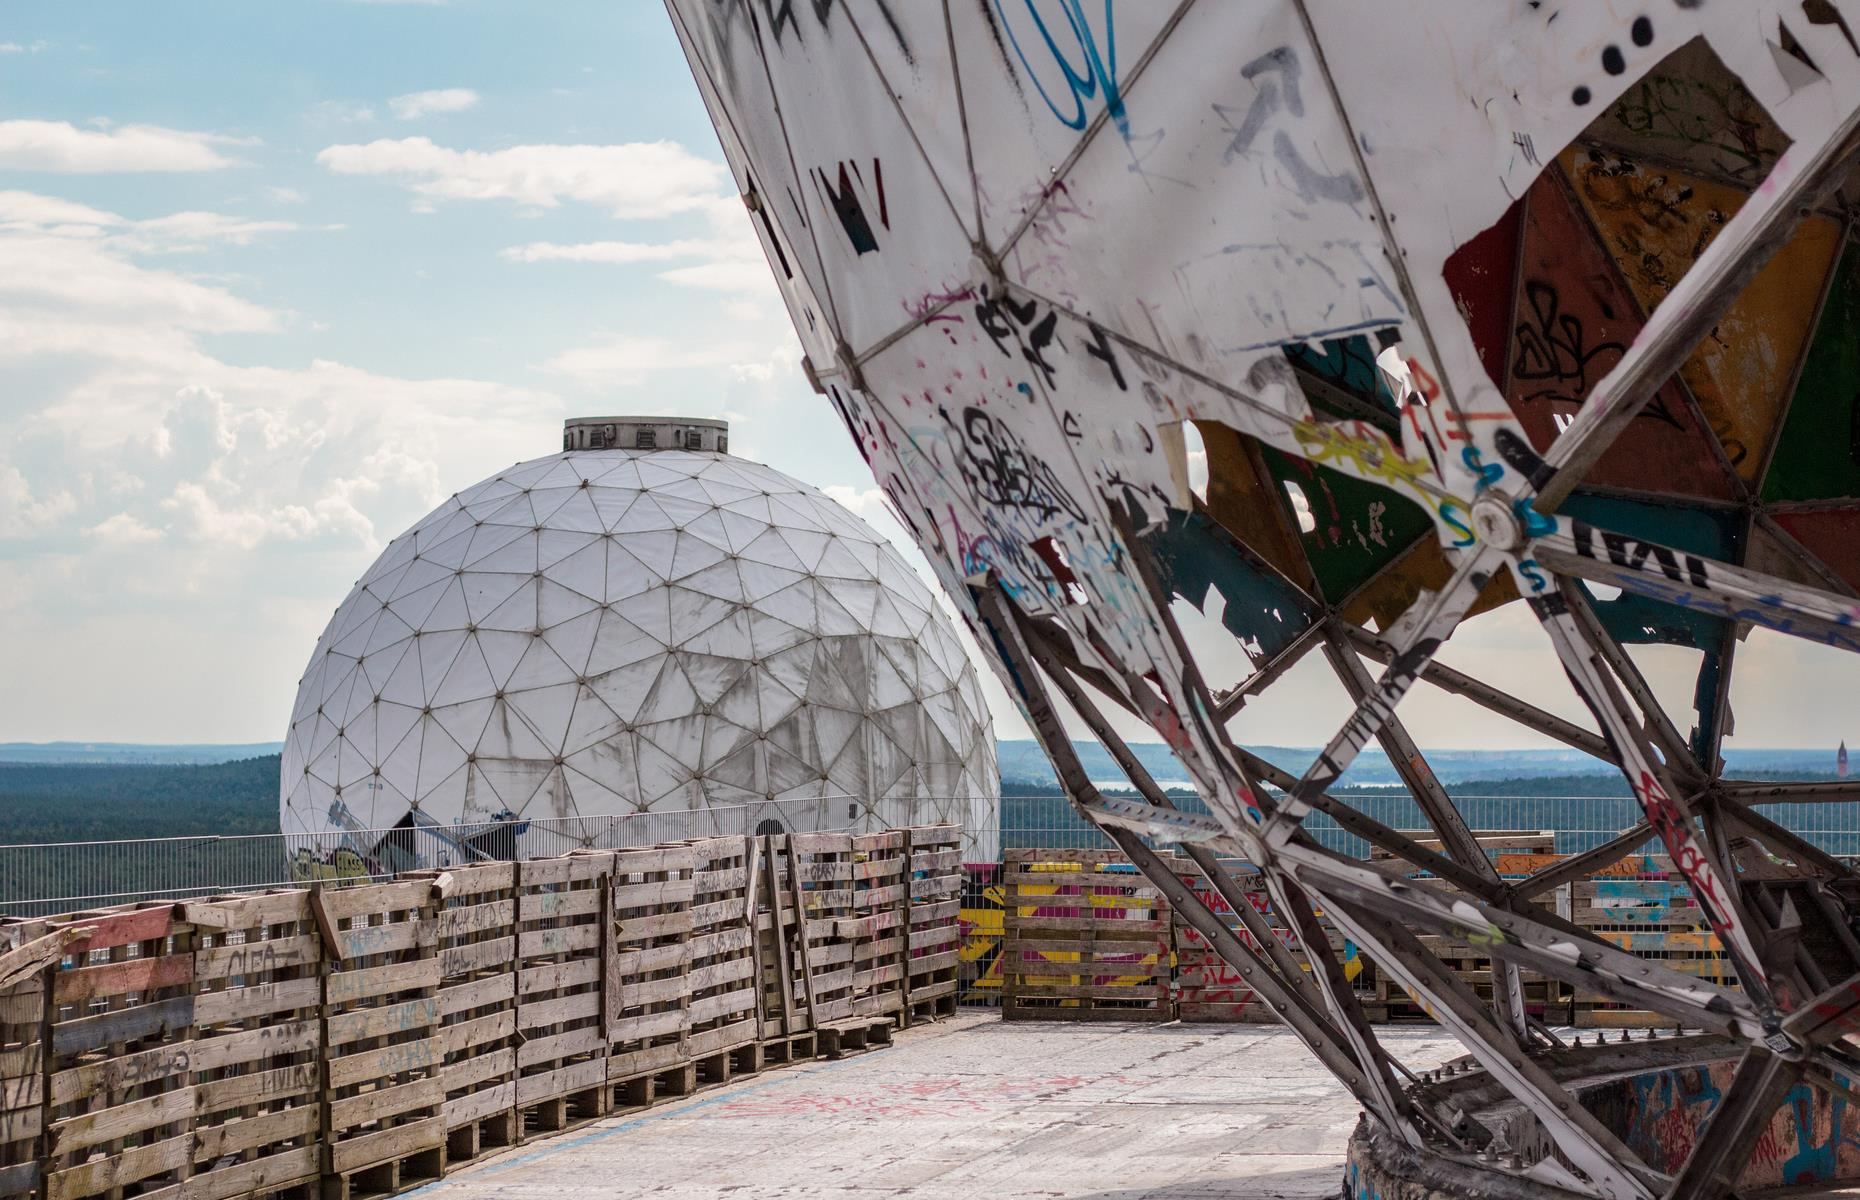 Slide 31 of 51: These derelict domes once formed the antenna of a listening station run by the USA's National Security Agency (NSA), in Berlin. Hidden on an artificial hill called Teufelsberg in the forested Grunewald, American agents used the station to spy on the Soviets during the Cold War. Since the late 1990s, when the site was left to decay, time seems to have stood still.